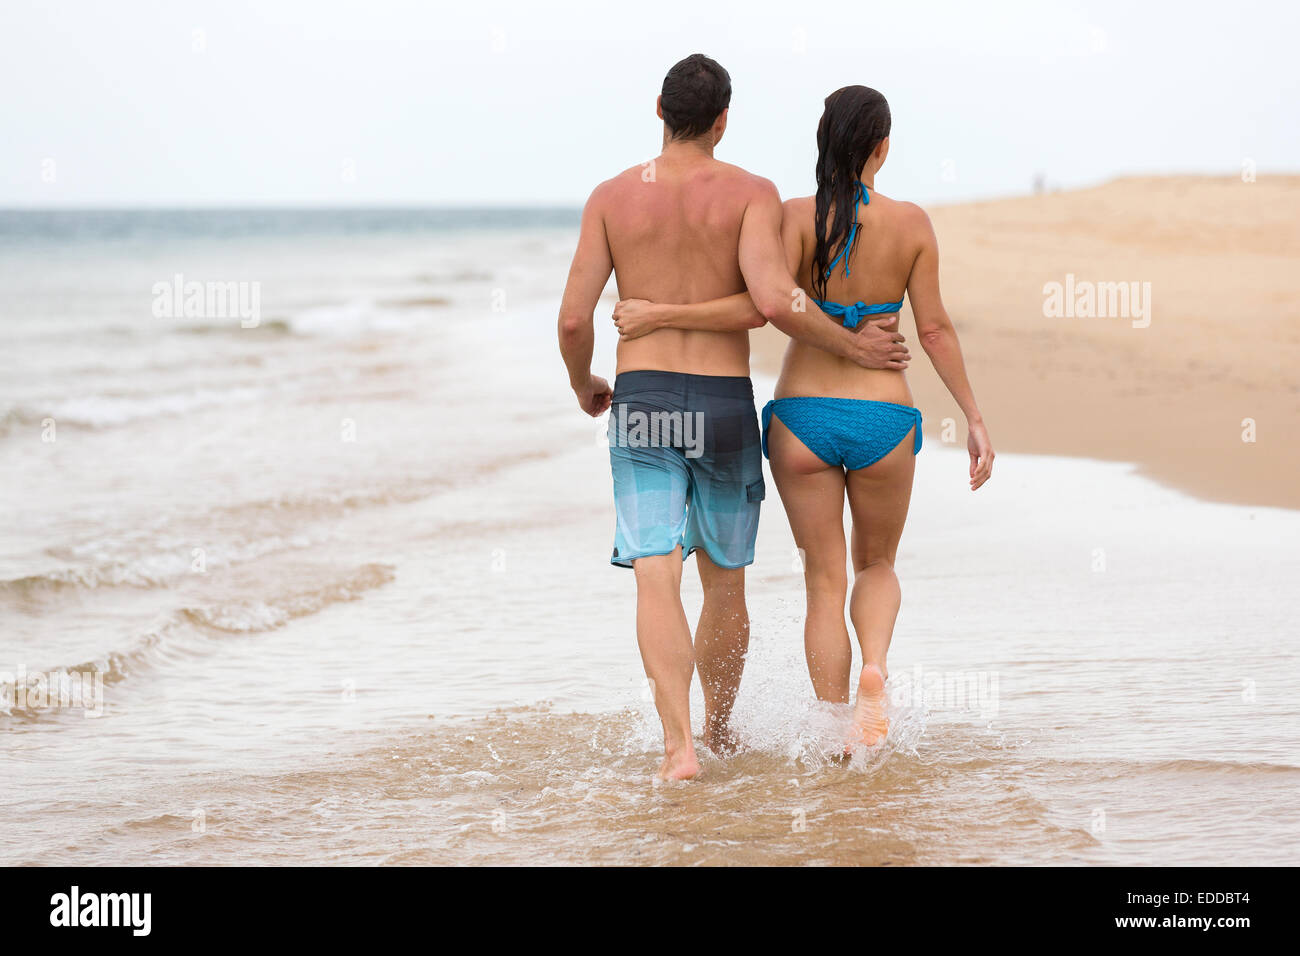 back view of couple walking on beach together - Stock Image